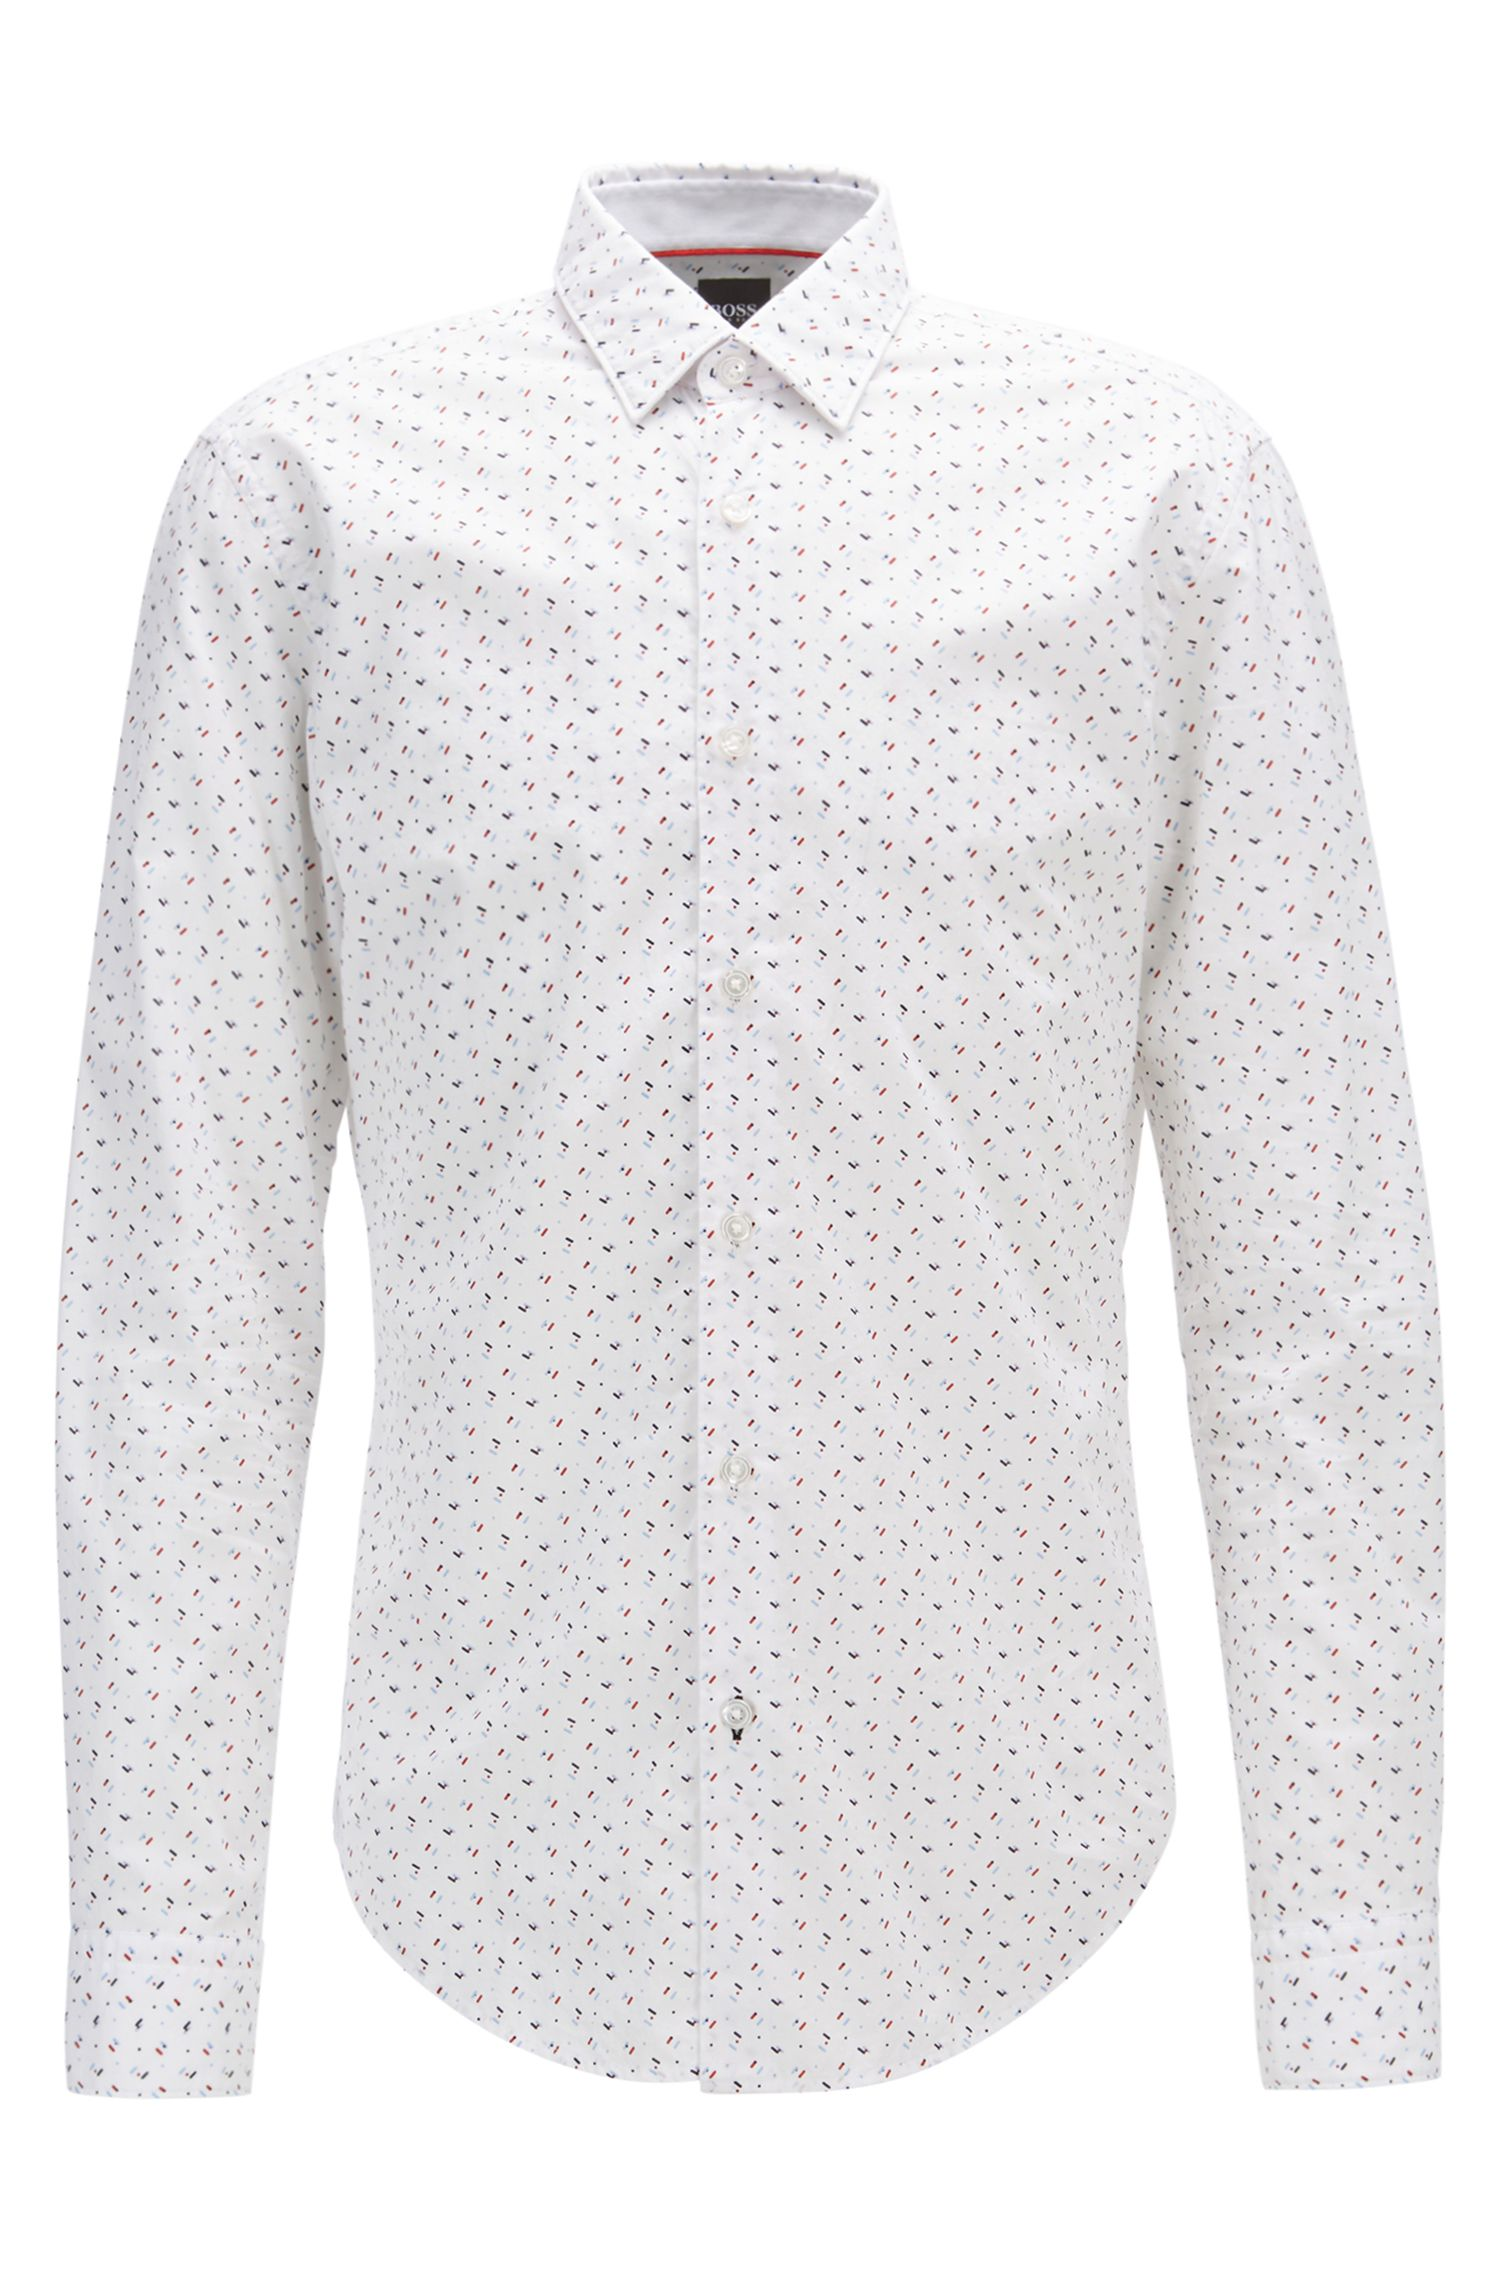 Printed slim-fit shirt in washed cotton poplin